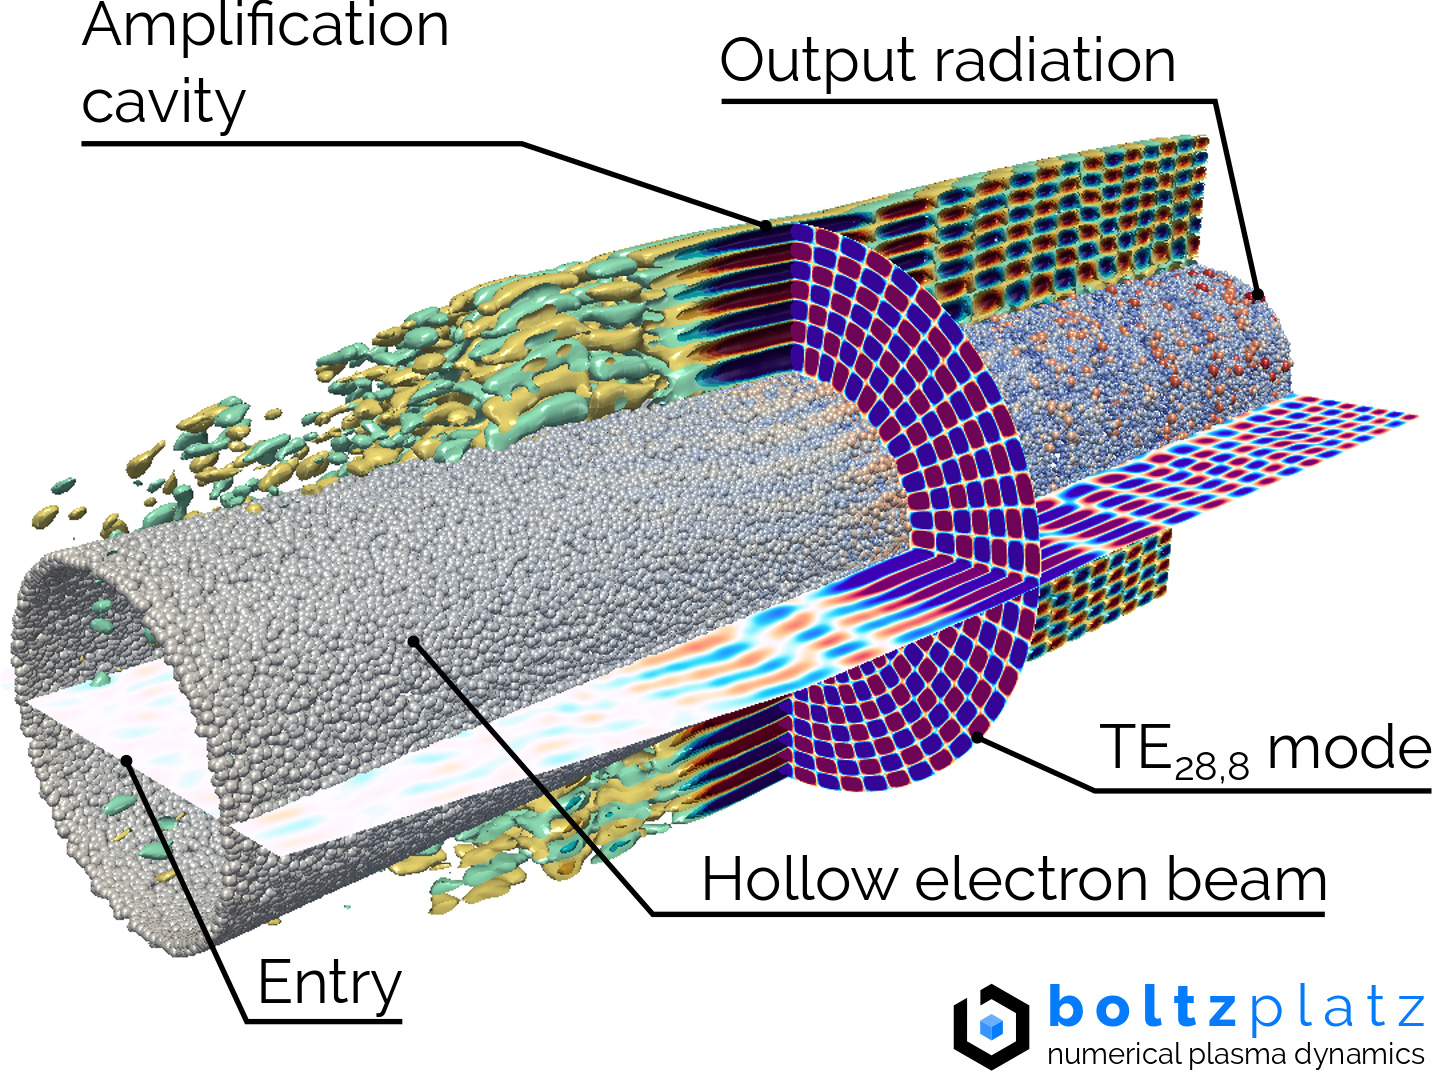 Physically accurate simulation of a gyrotron resonator device, where the kinetic energy of an accelerated electron hollow beam is converted into electromagnetic energy by utilizing the electron cyclotron resonance (ECR) instability